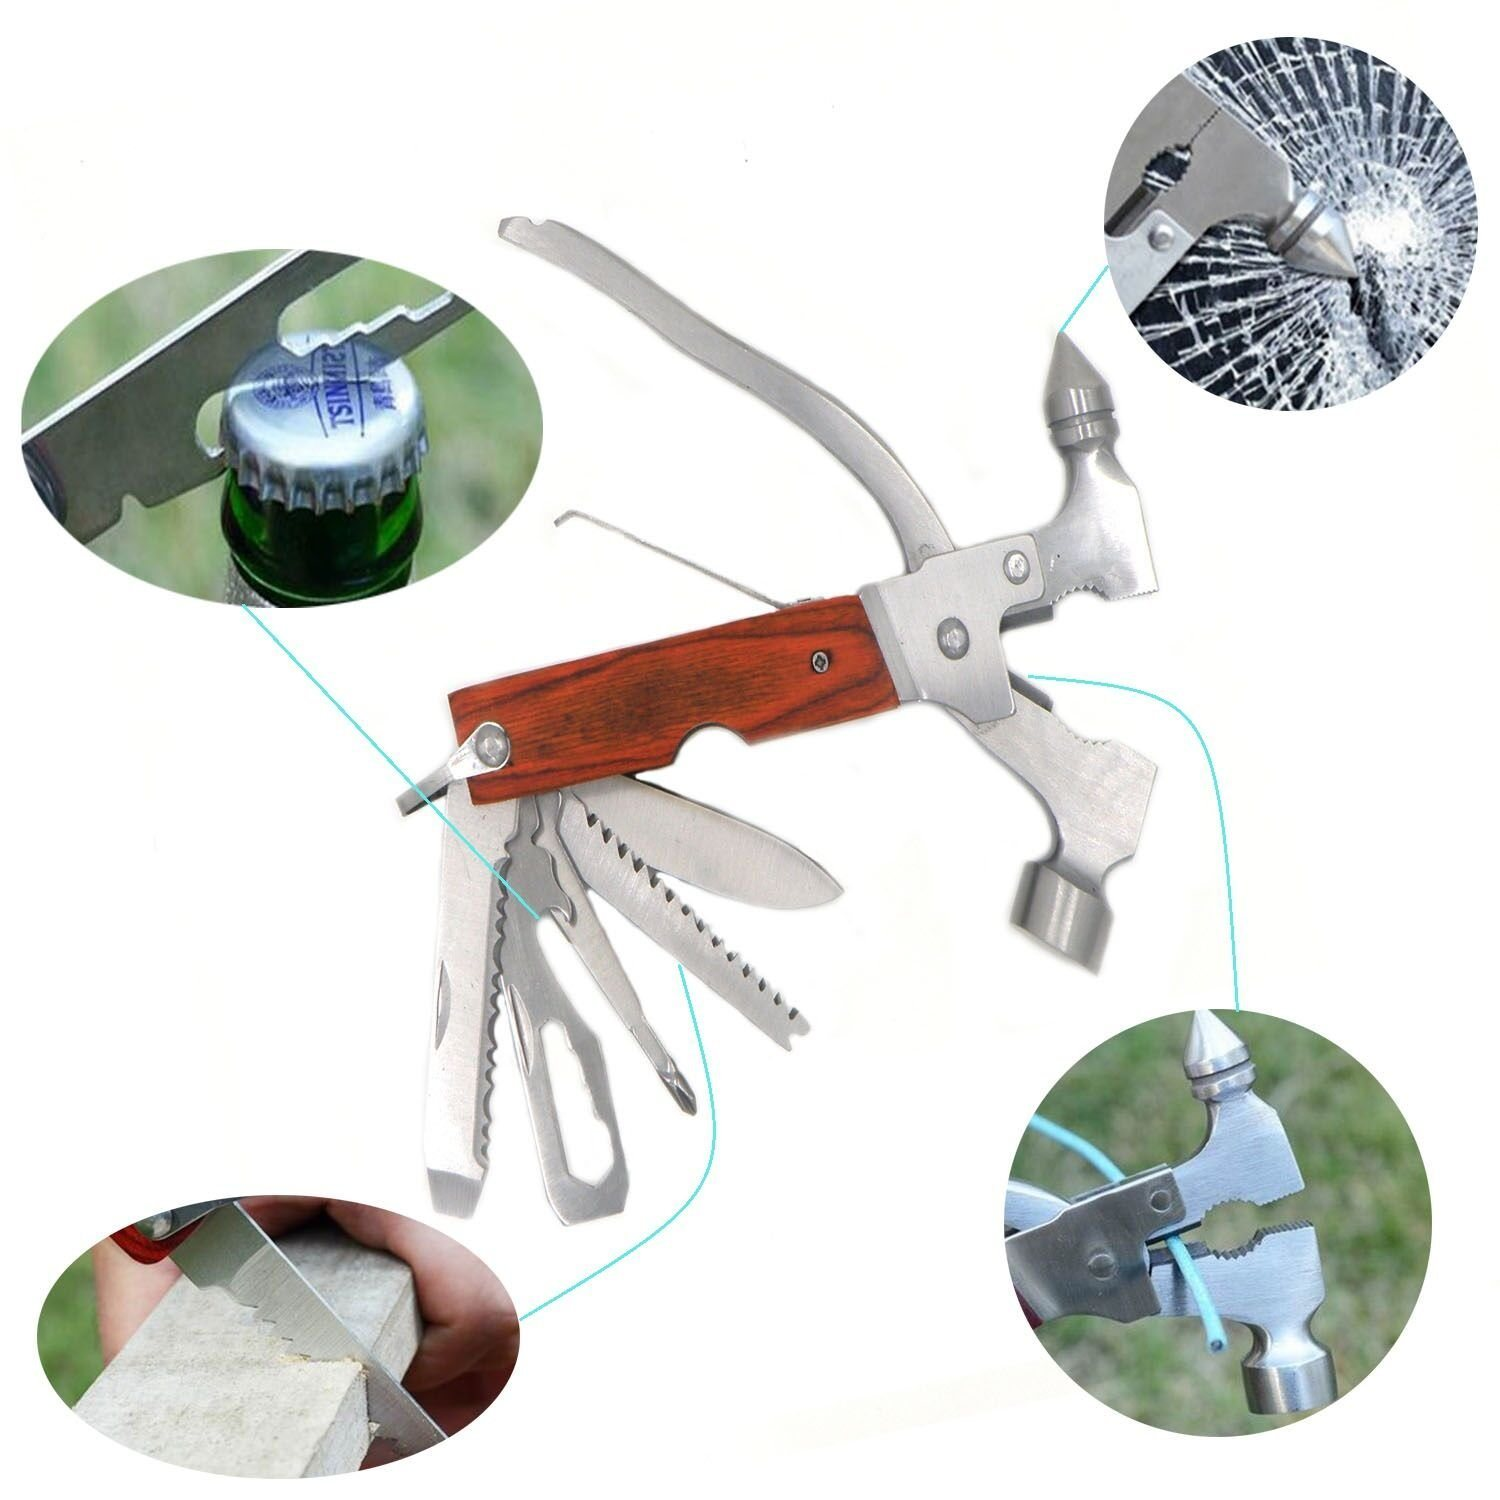 8 in 1 Multi-Function Seat Belt Cutter Tool Stainless Steel Auto Emergency Kit with Safety Hammer